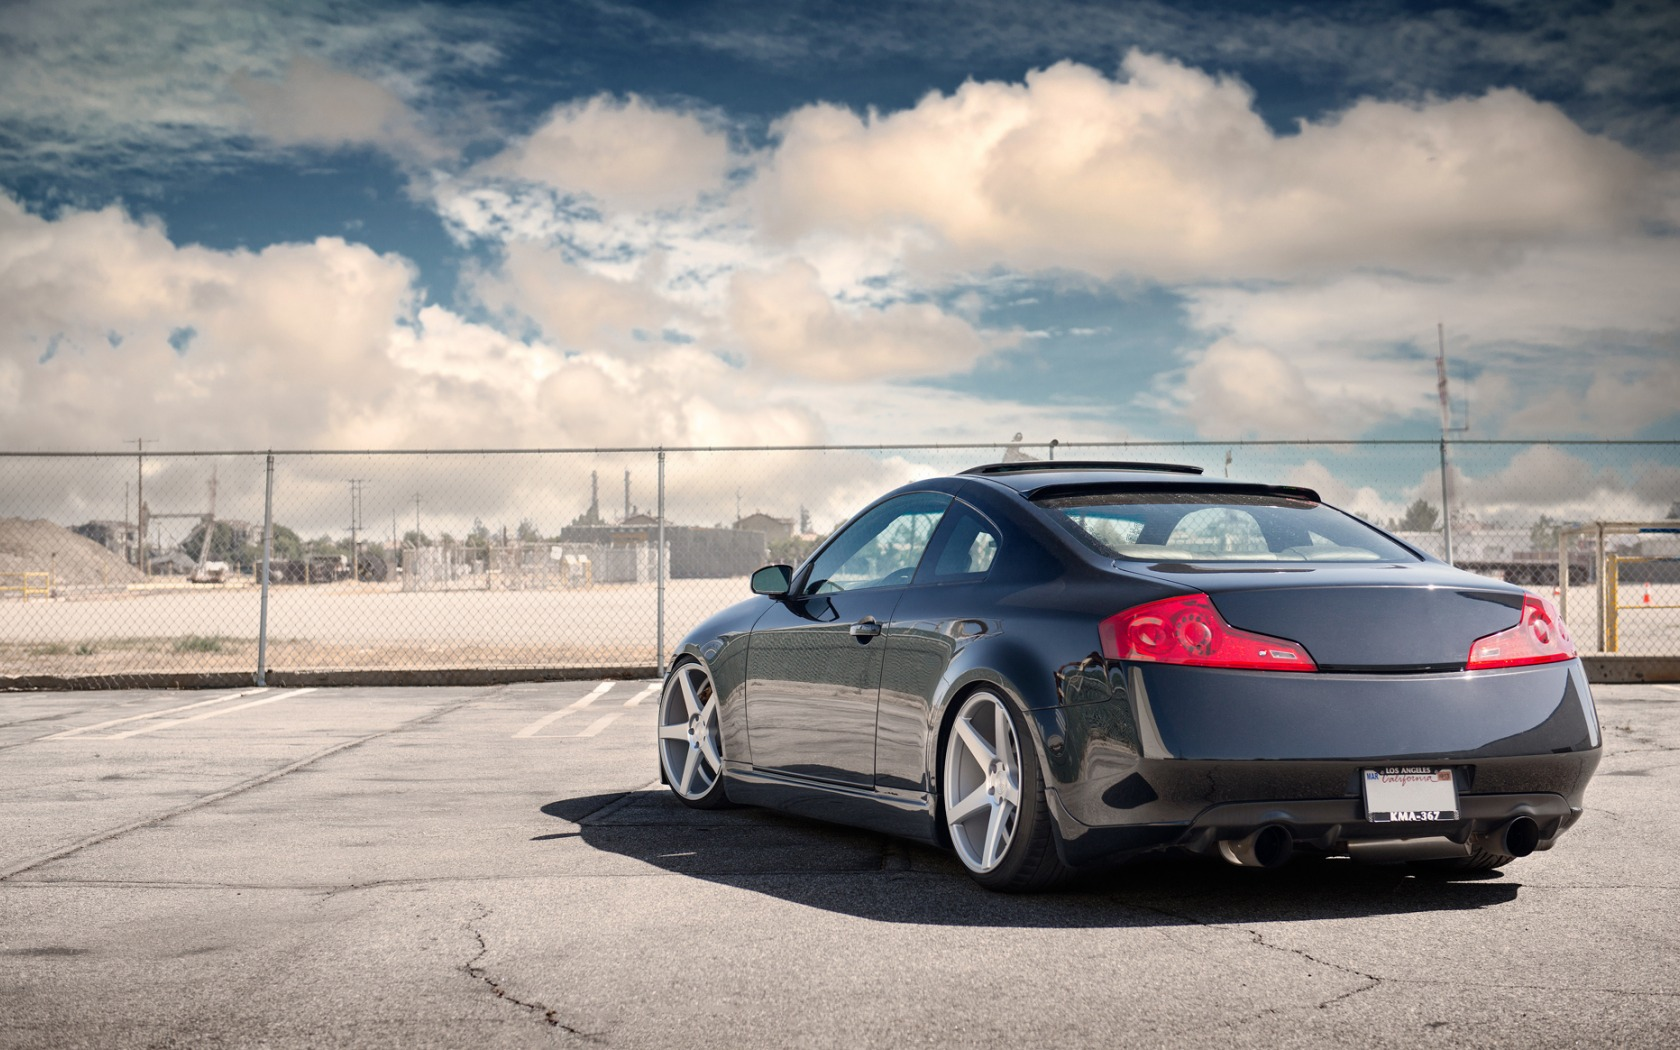 Gallery For gt Stanced G35 Coupe Wallpaper 1680x1050